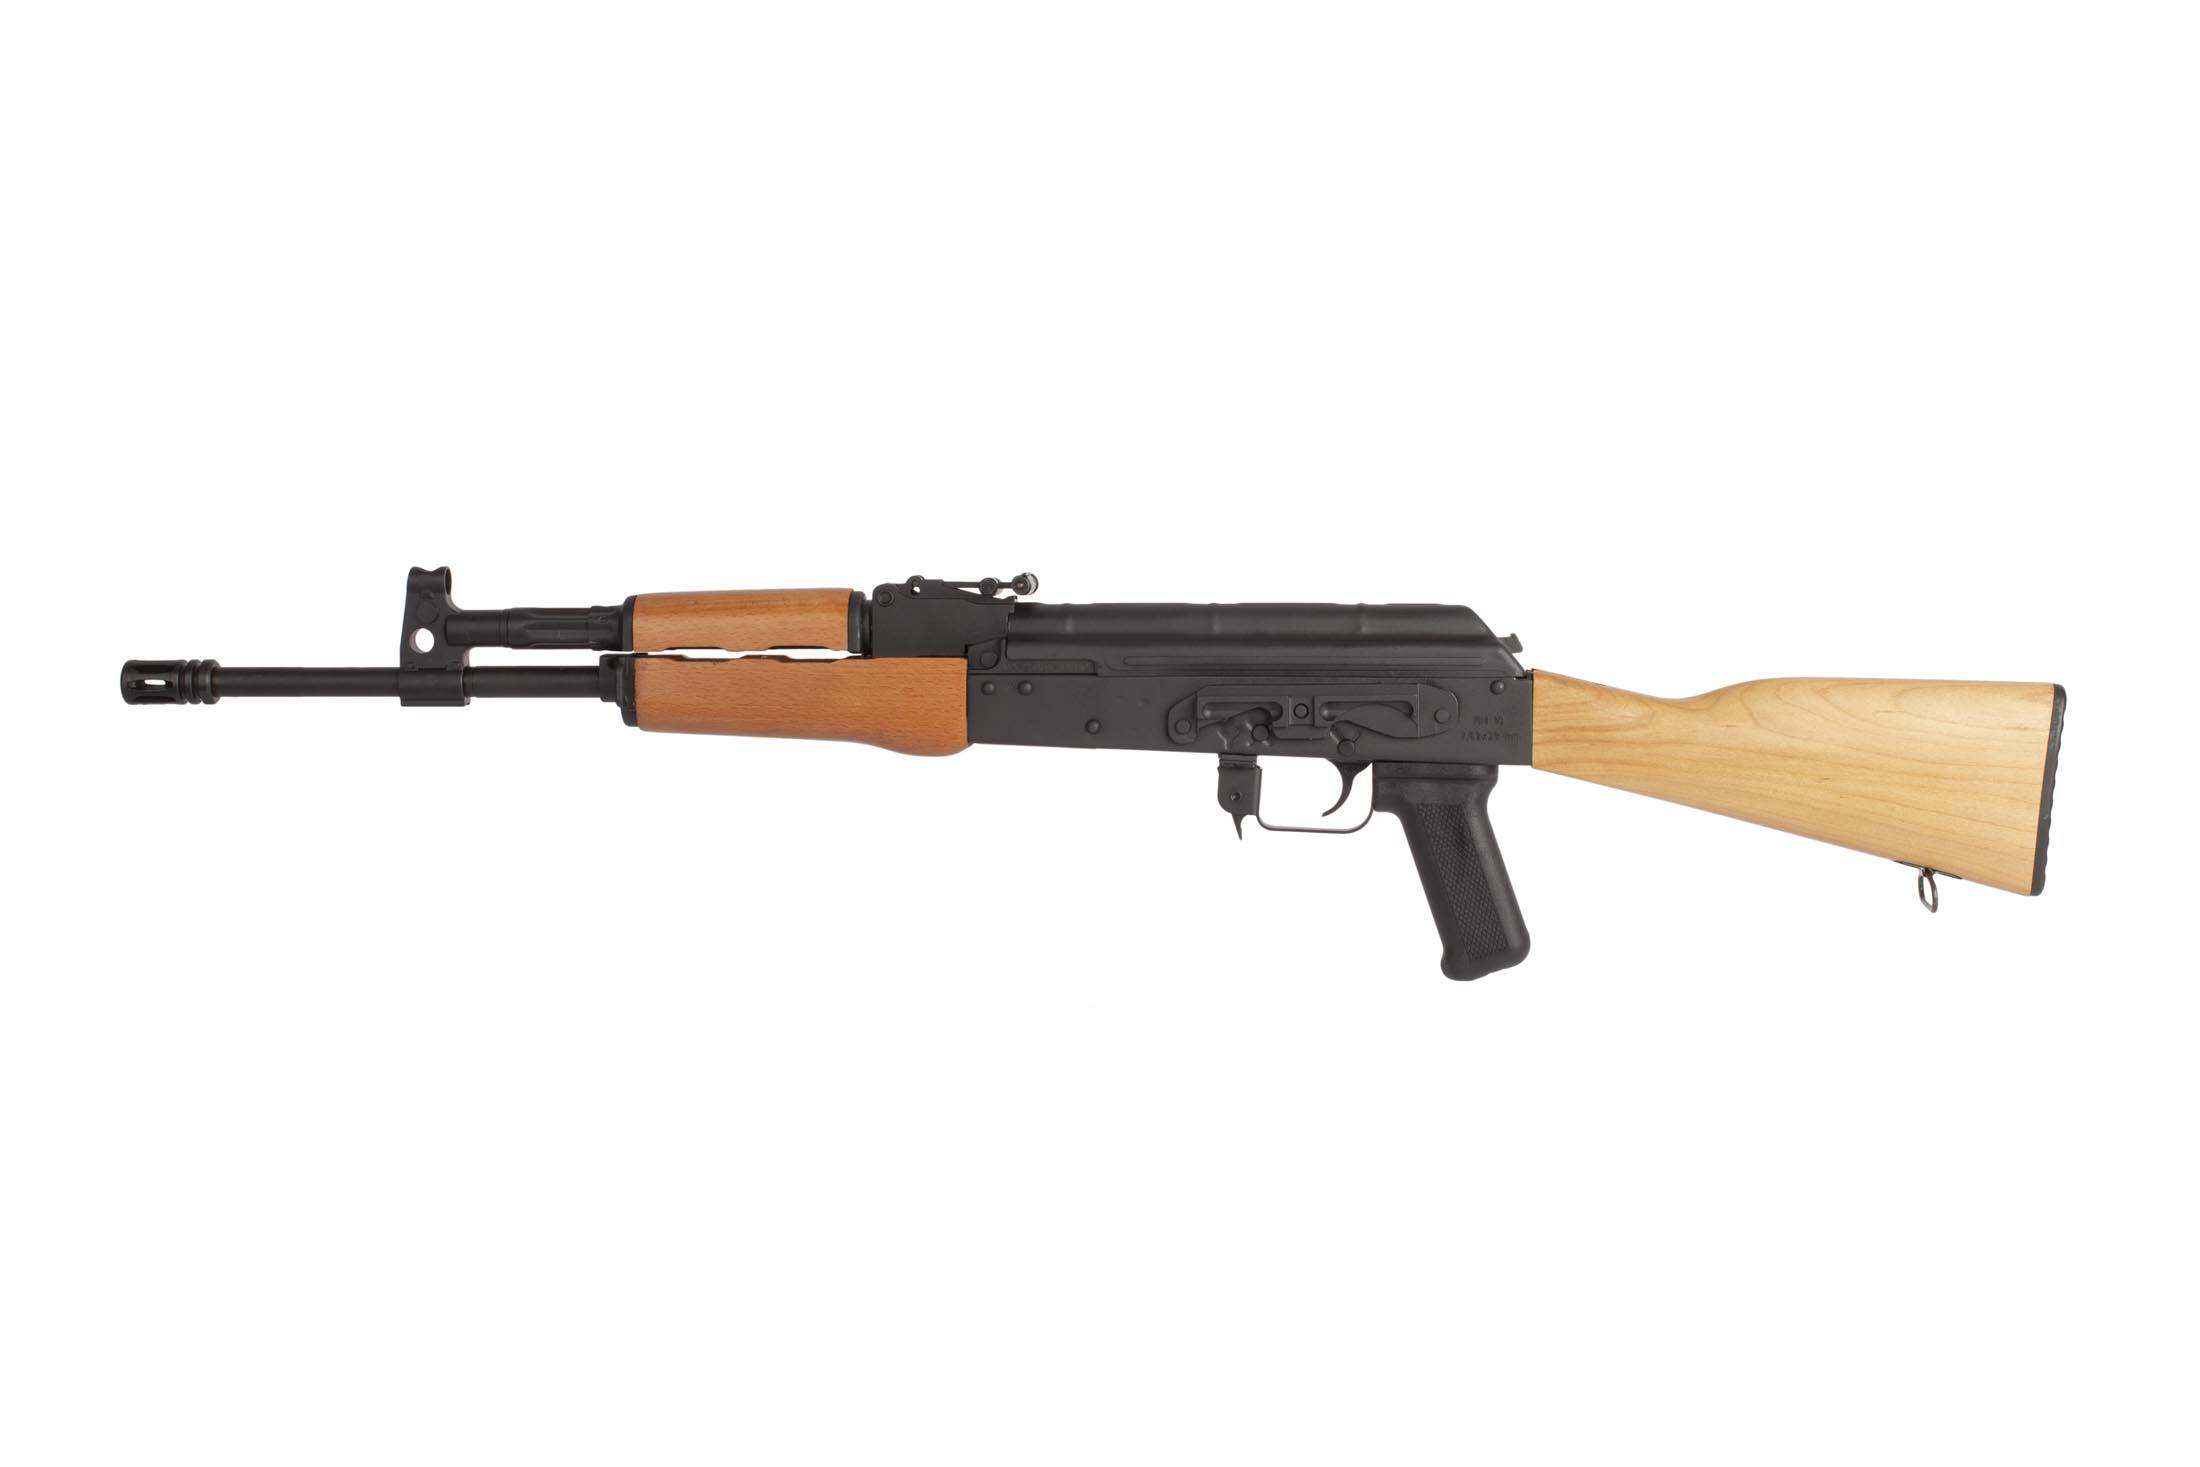 The RH 10 Century Arms AK has a side scope mount and hooded front sight